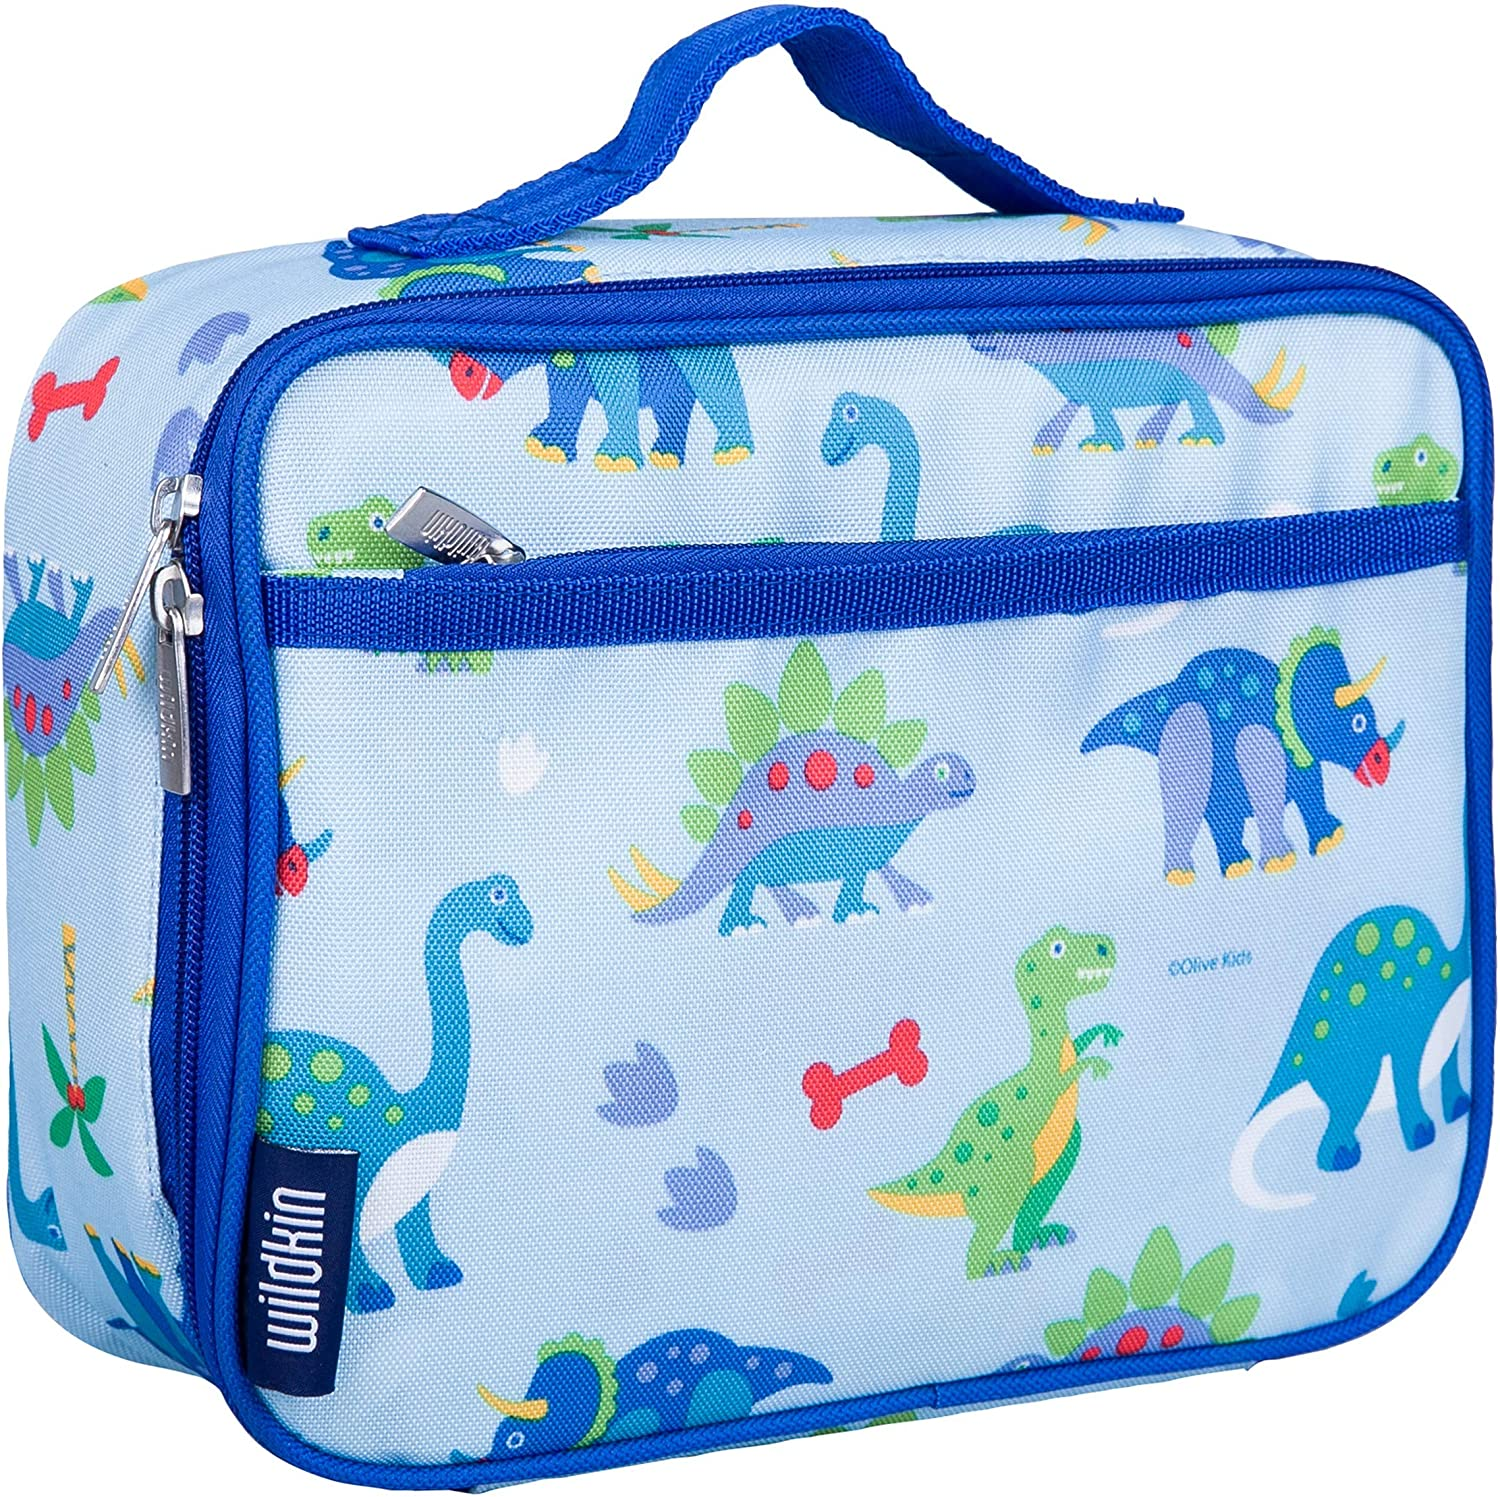 Personalised Dinosaur Dino Boys Lunch Box Lunch Cooler Sandwich School Bag